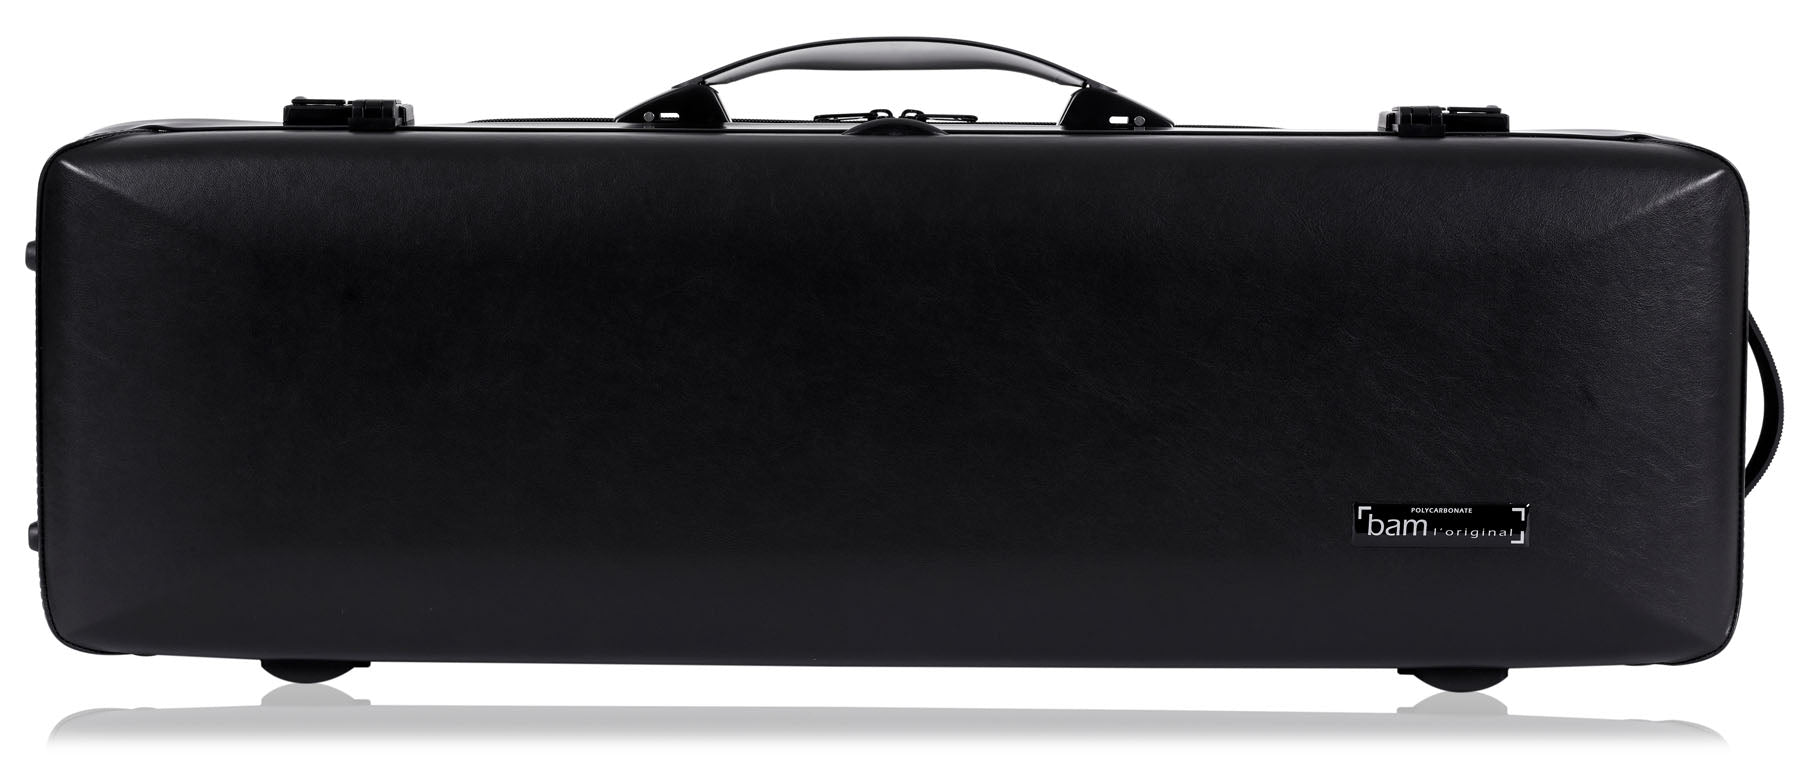 BAM ORCHESTRA SUPREME Hightech Oblong Violin Case